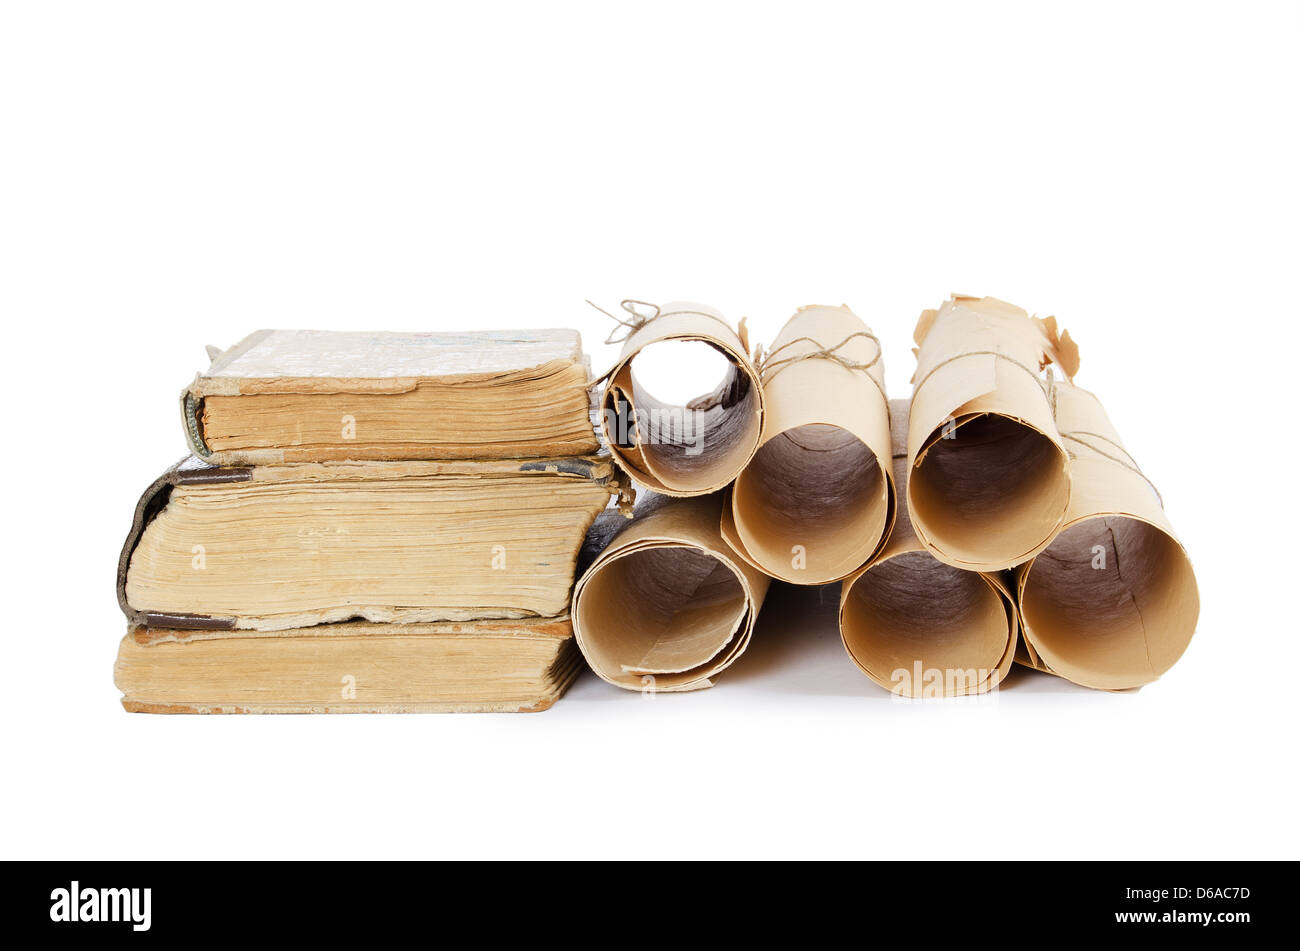 Many ancient scrolls and old books - Stock Image